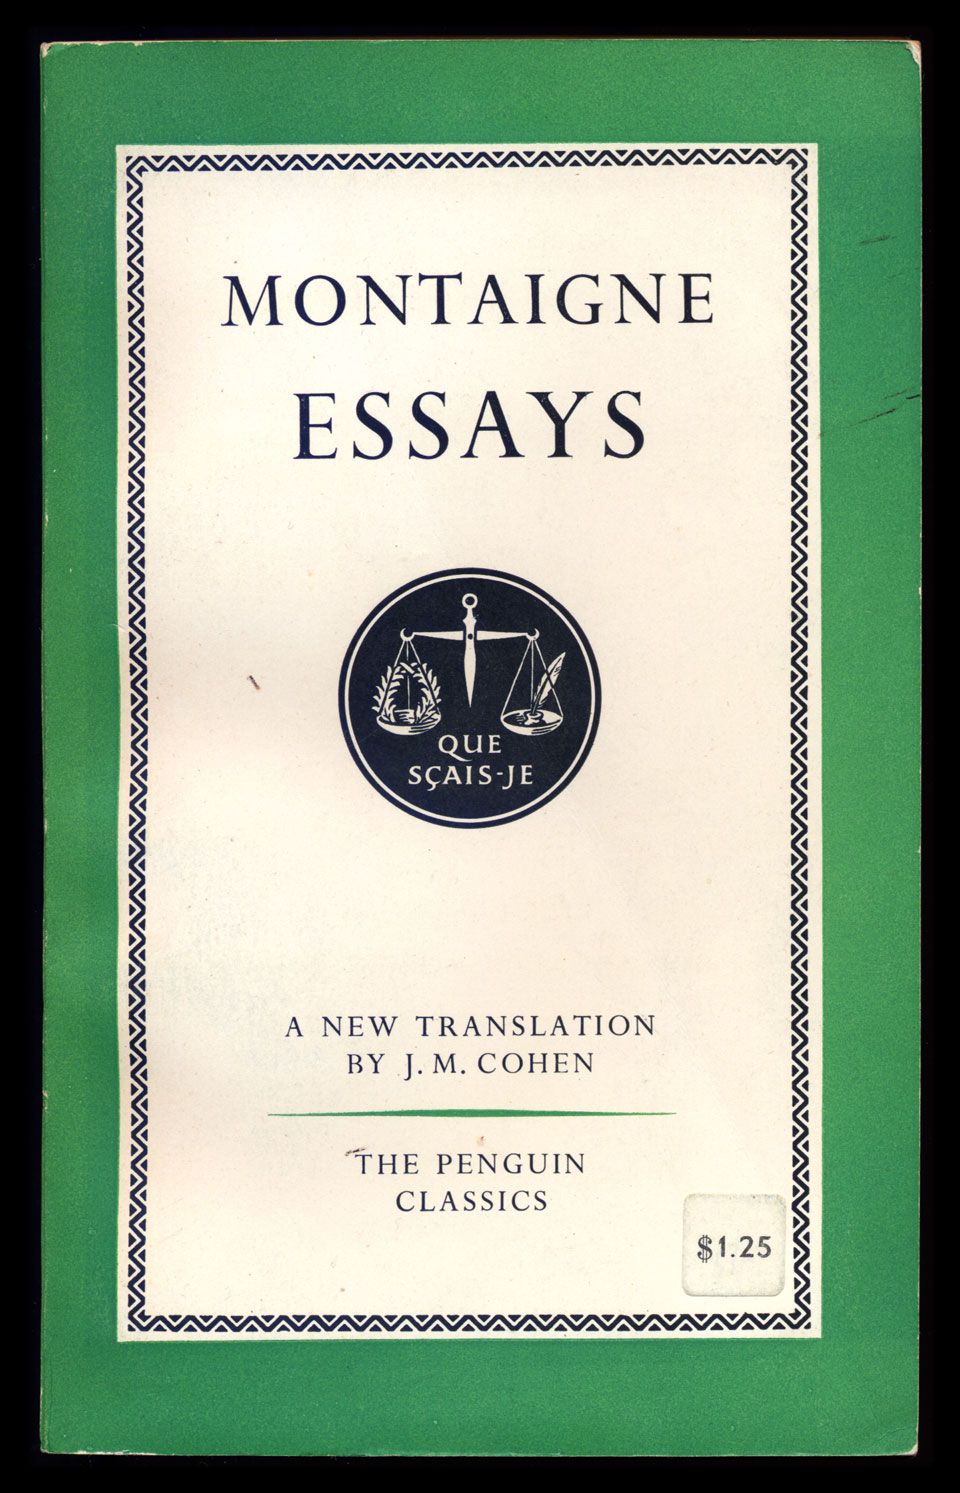 """essays montaigne online Montaigne's essay """"of cruelty"""" explores a phenomenon we would now call empathy, or the ability to """"feel into"""" or share another's sufferings or pleasures: an experience montaigne tells us he frequently has himself, even with nonhuman animals."""